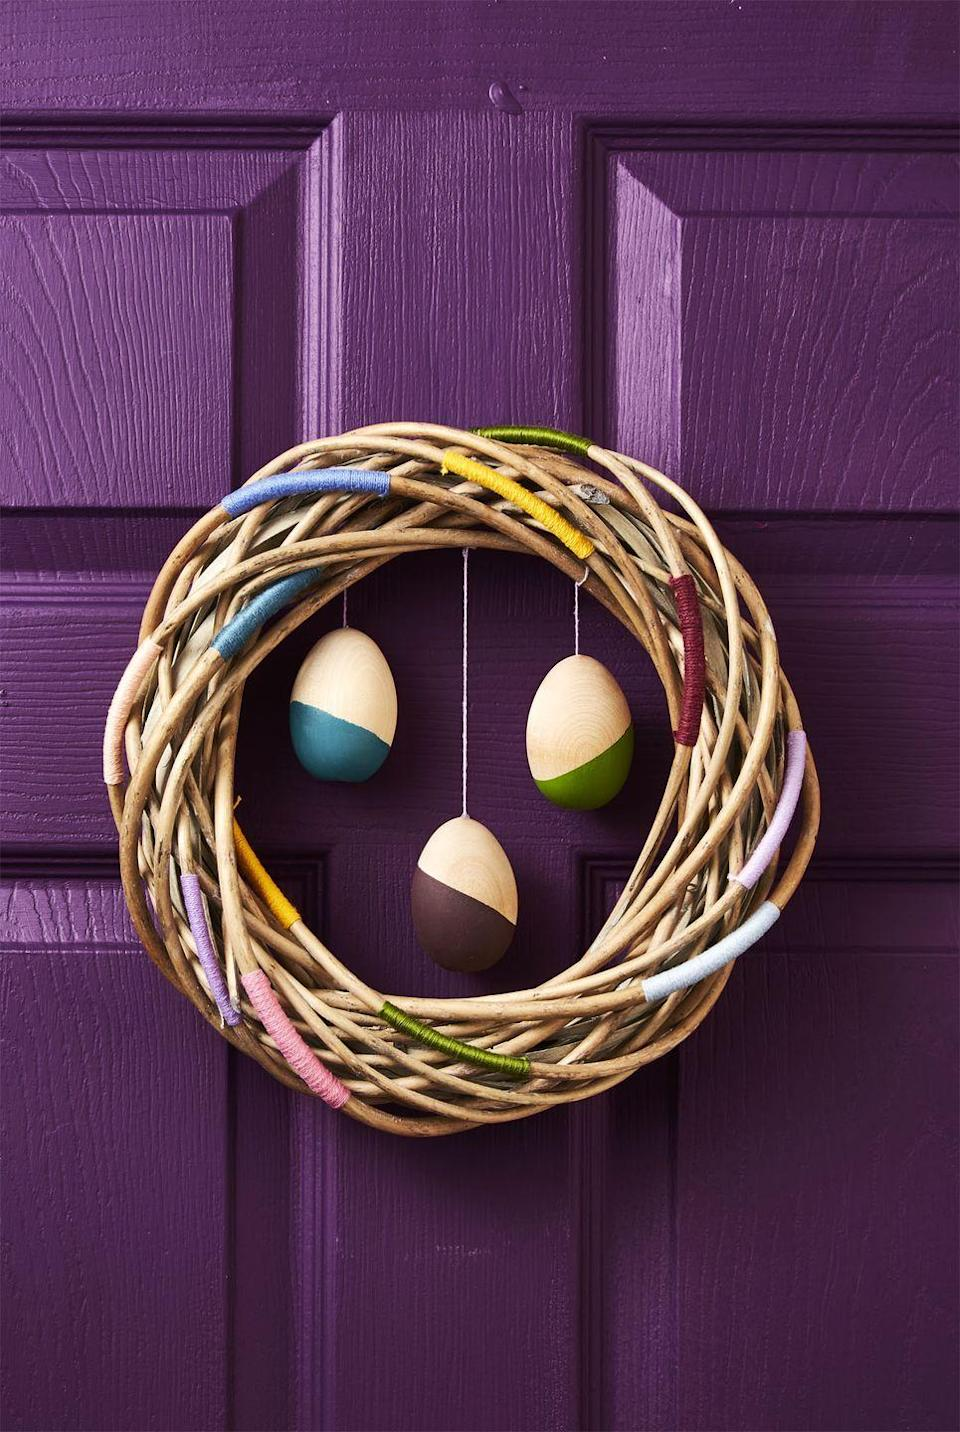 <p>Spruce up a craft grapevine wreath by wrapping colorful thread throughout. Hang a trio of decorated wooden eggs in the center to add fun movement when you open the door to greet guests. </p>